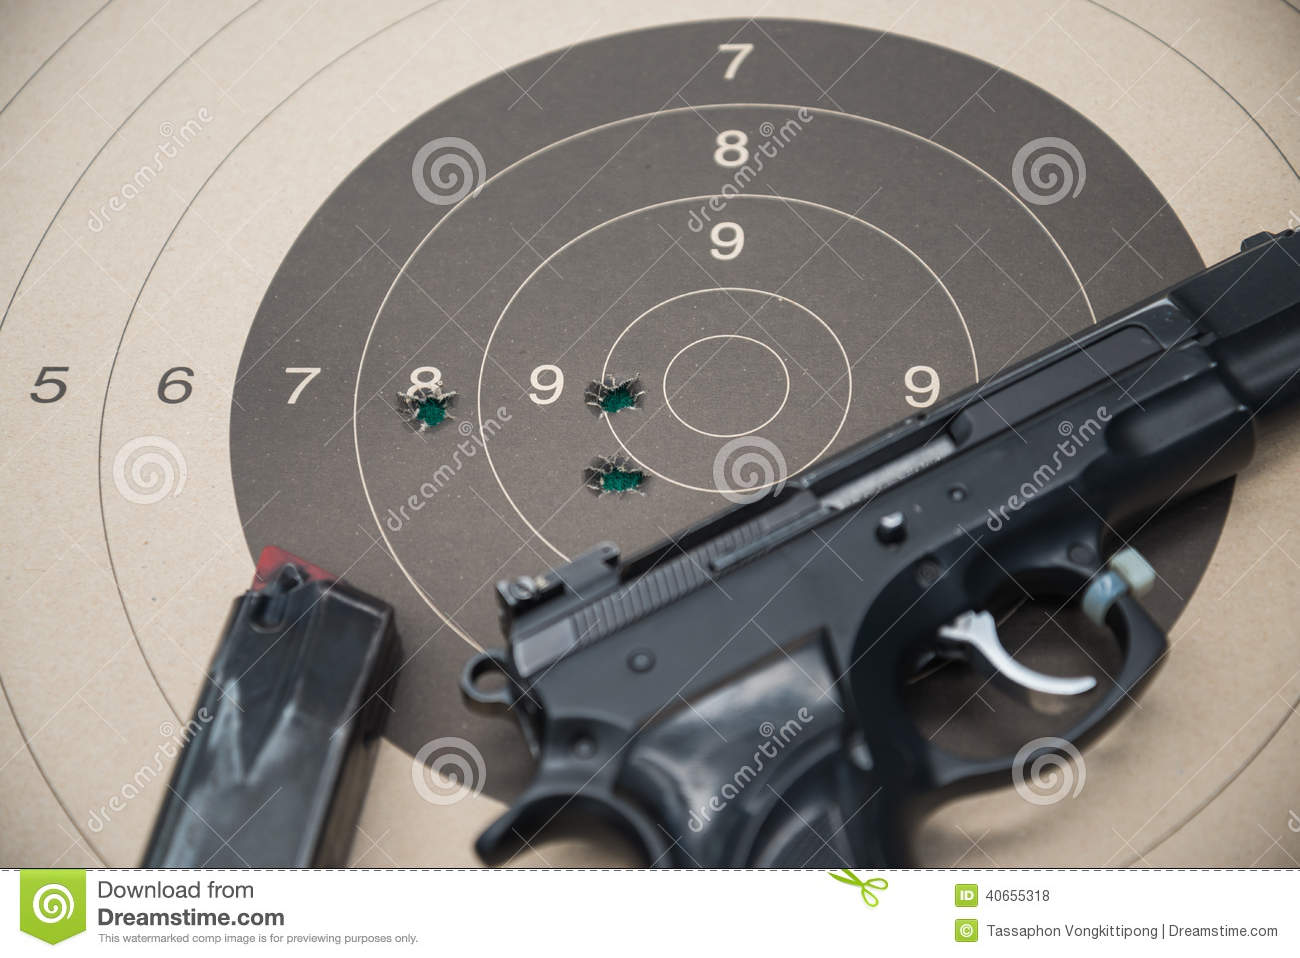 Paper target gun stock photo  Image of ammo, competition